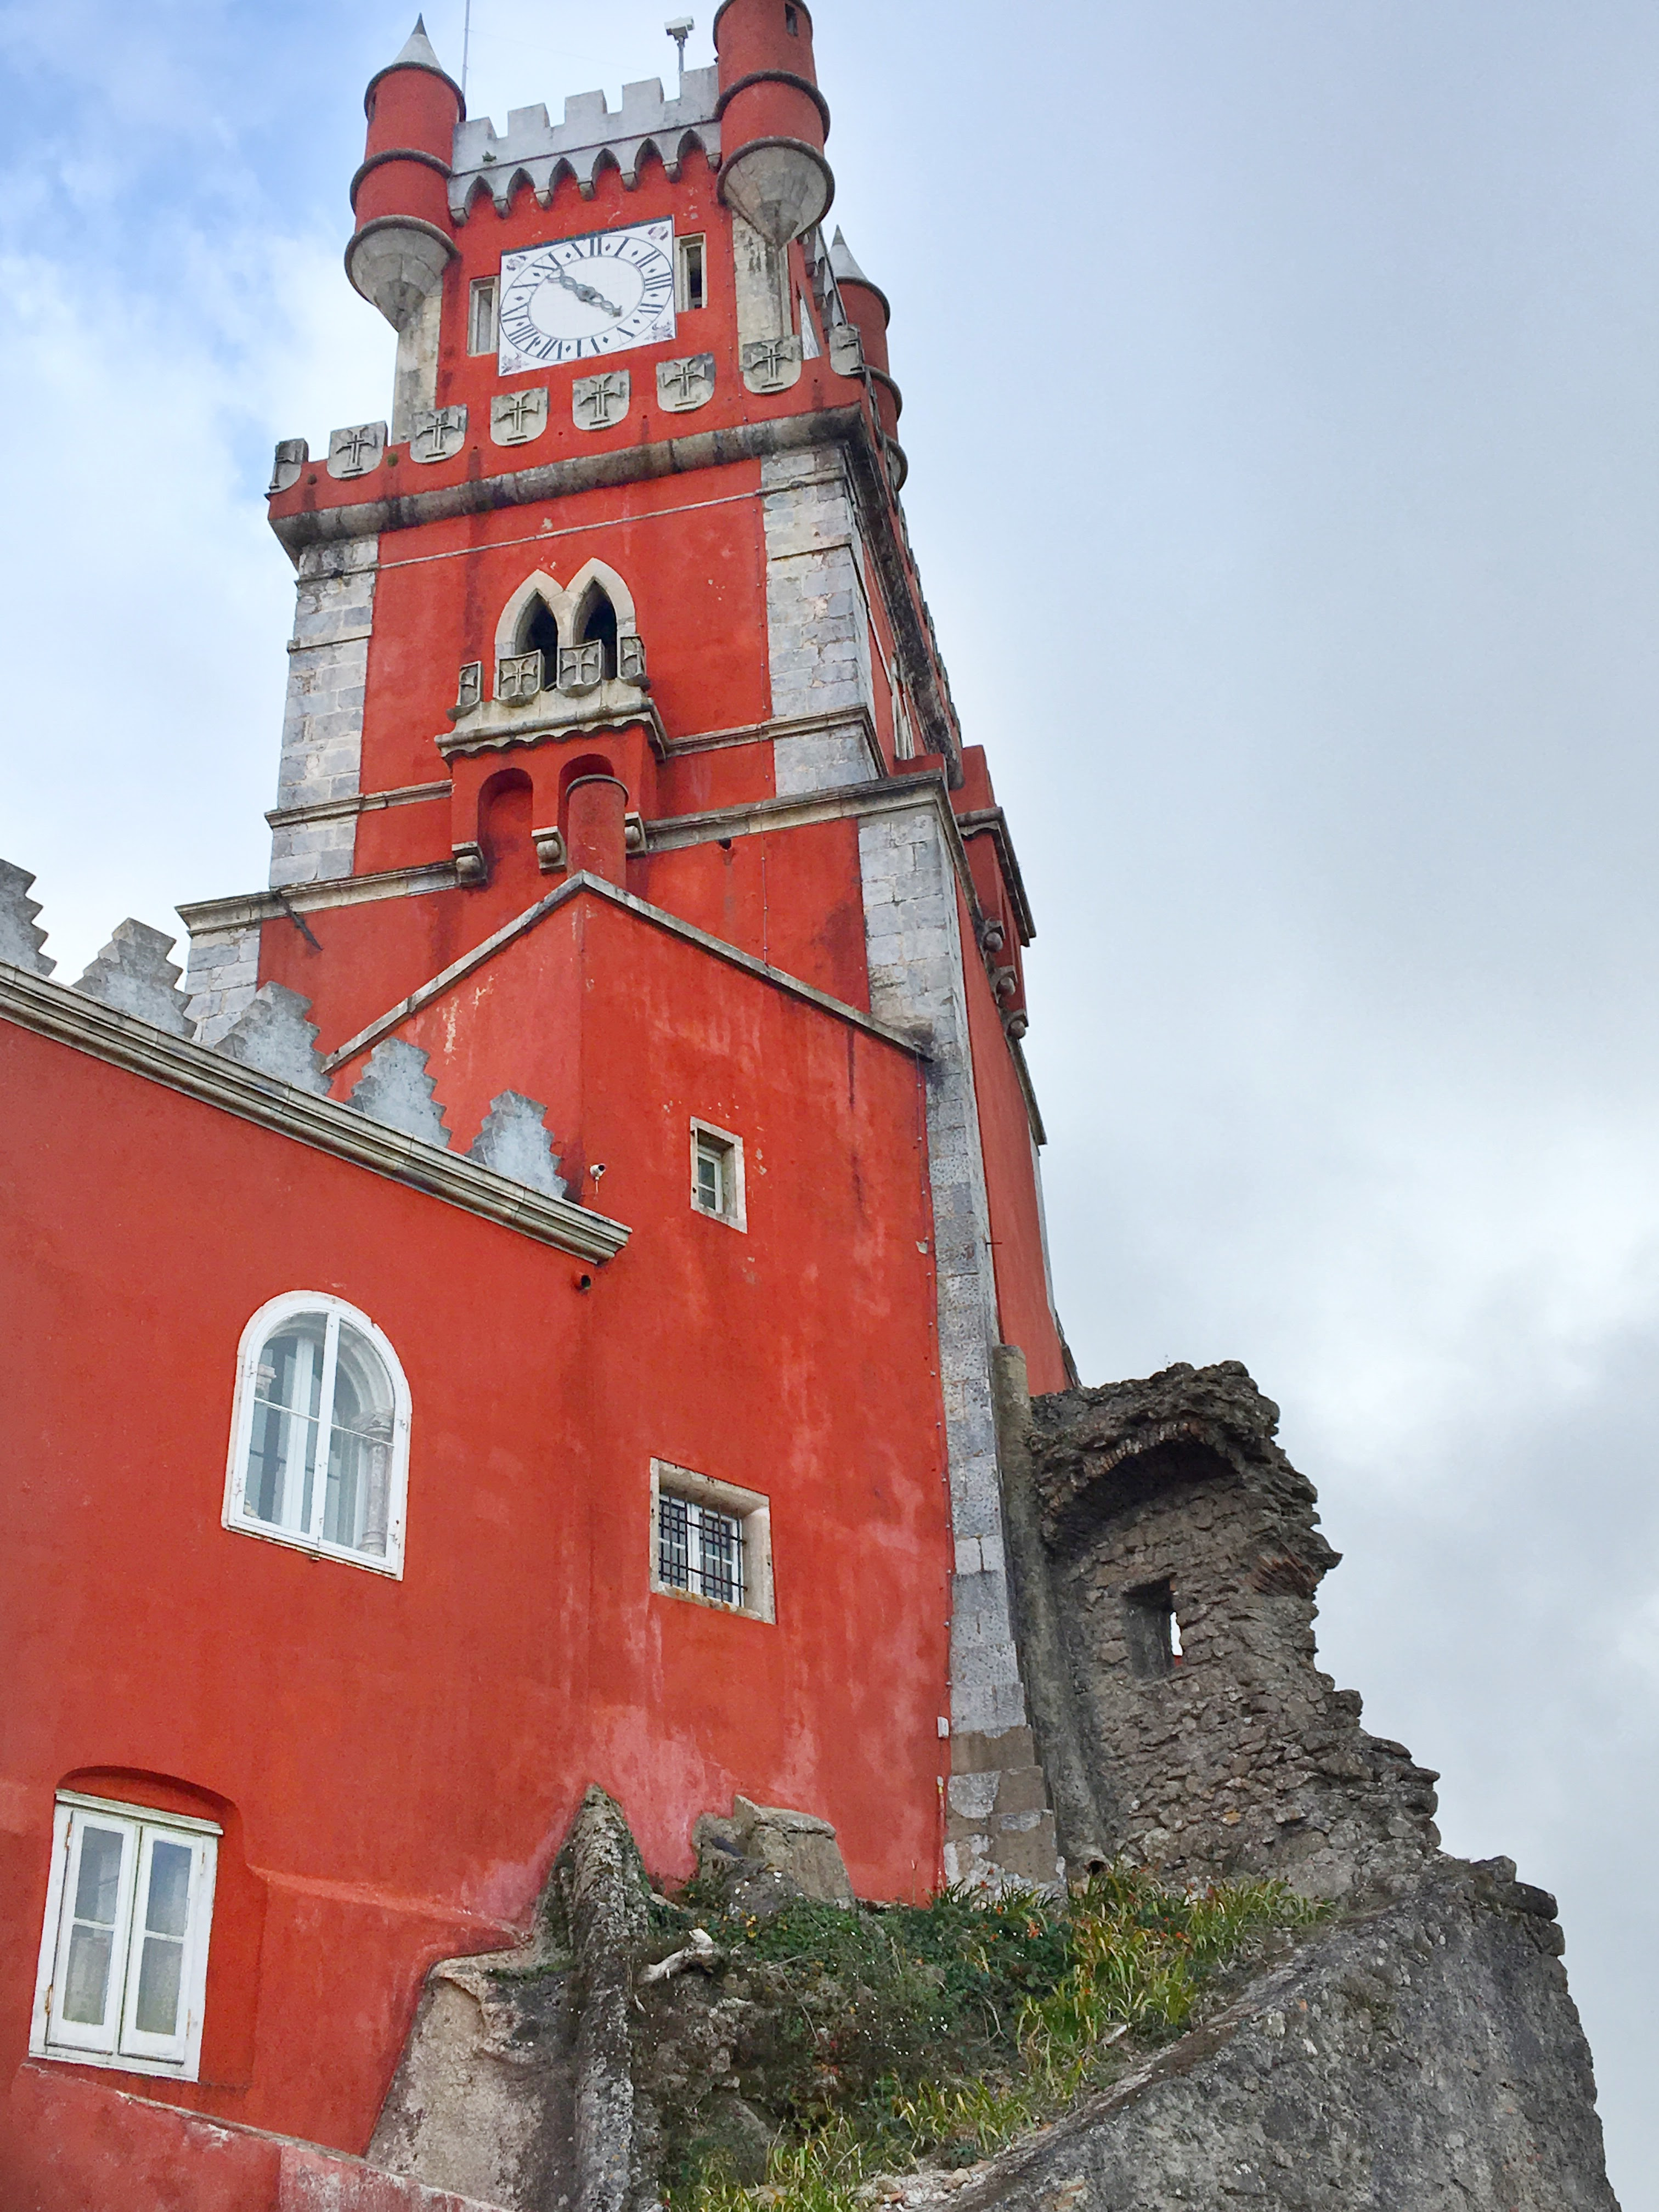 Colorful clocktower at the Pena Palace in SIntra, Portugal